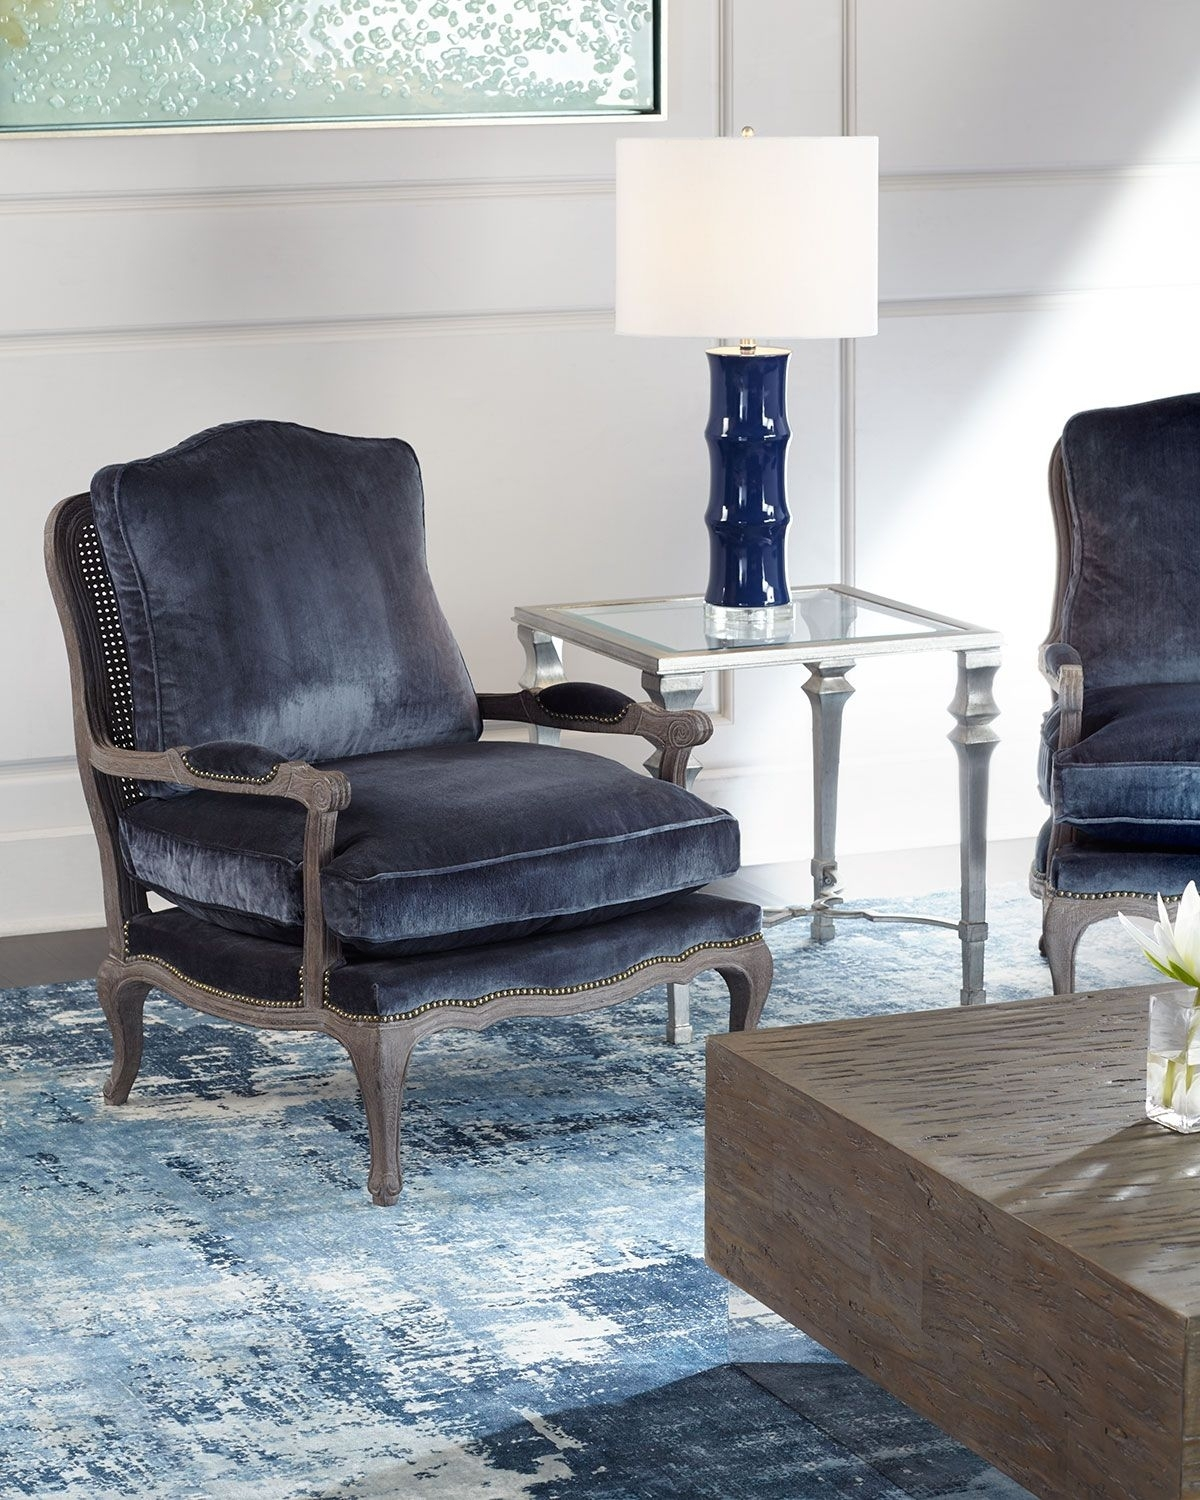 Inspiration about Pinterest With Regard To Durango Smoke & Warm Cedar Dining Chairs (#11 of 20)